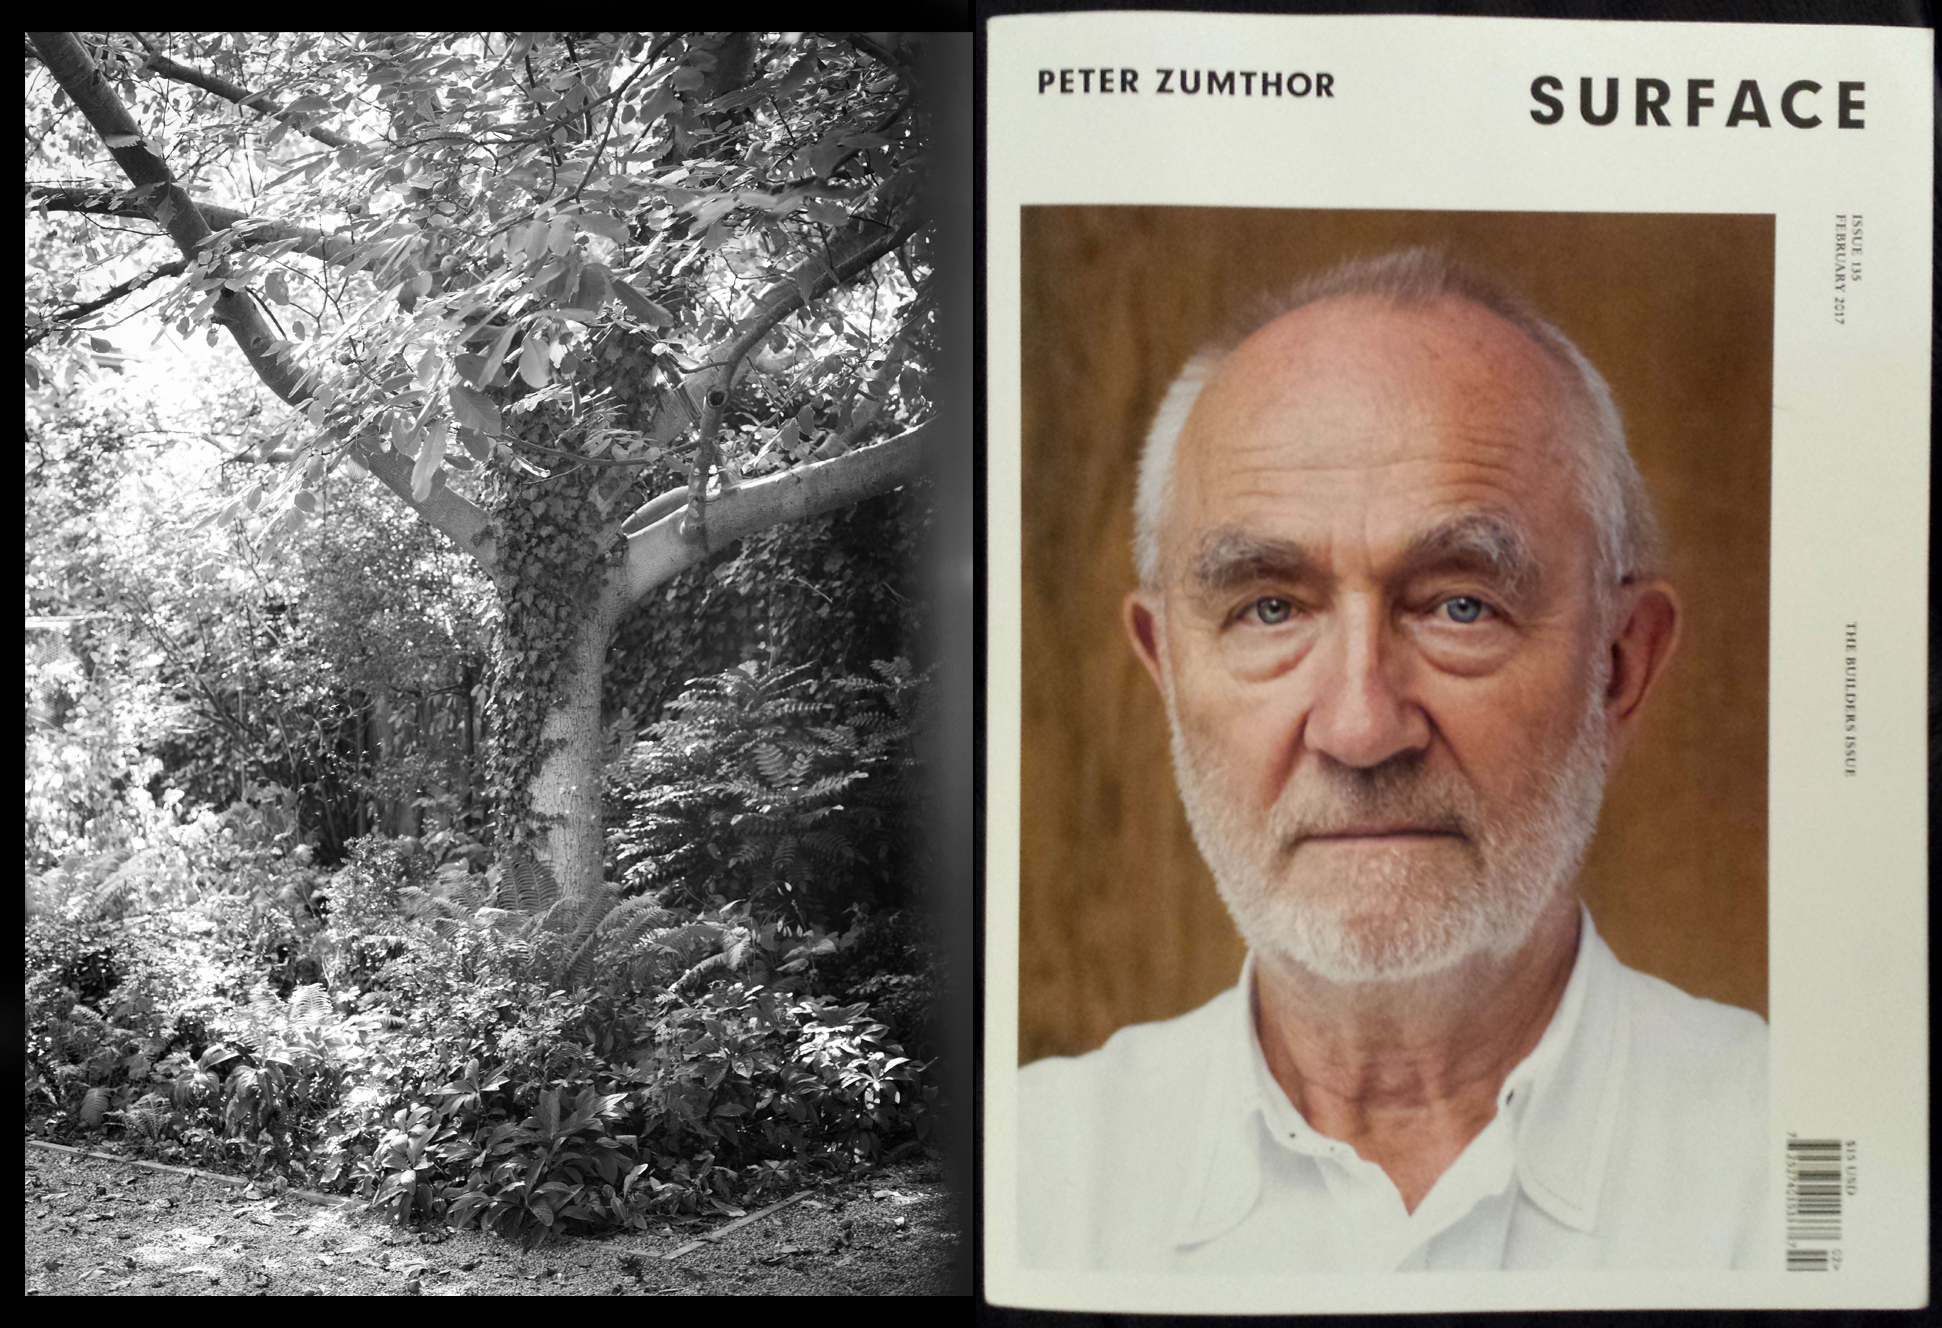 017_10_Peter_Zumthor-Zurface magazin